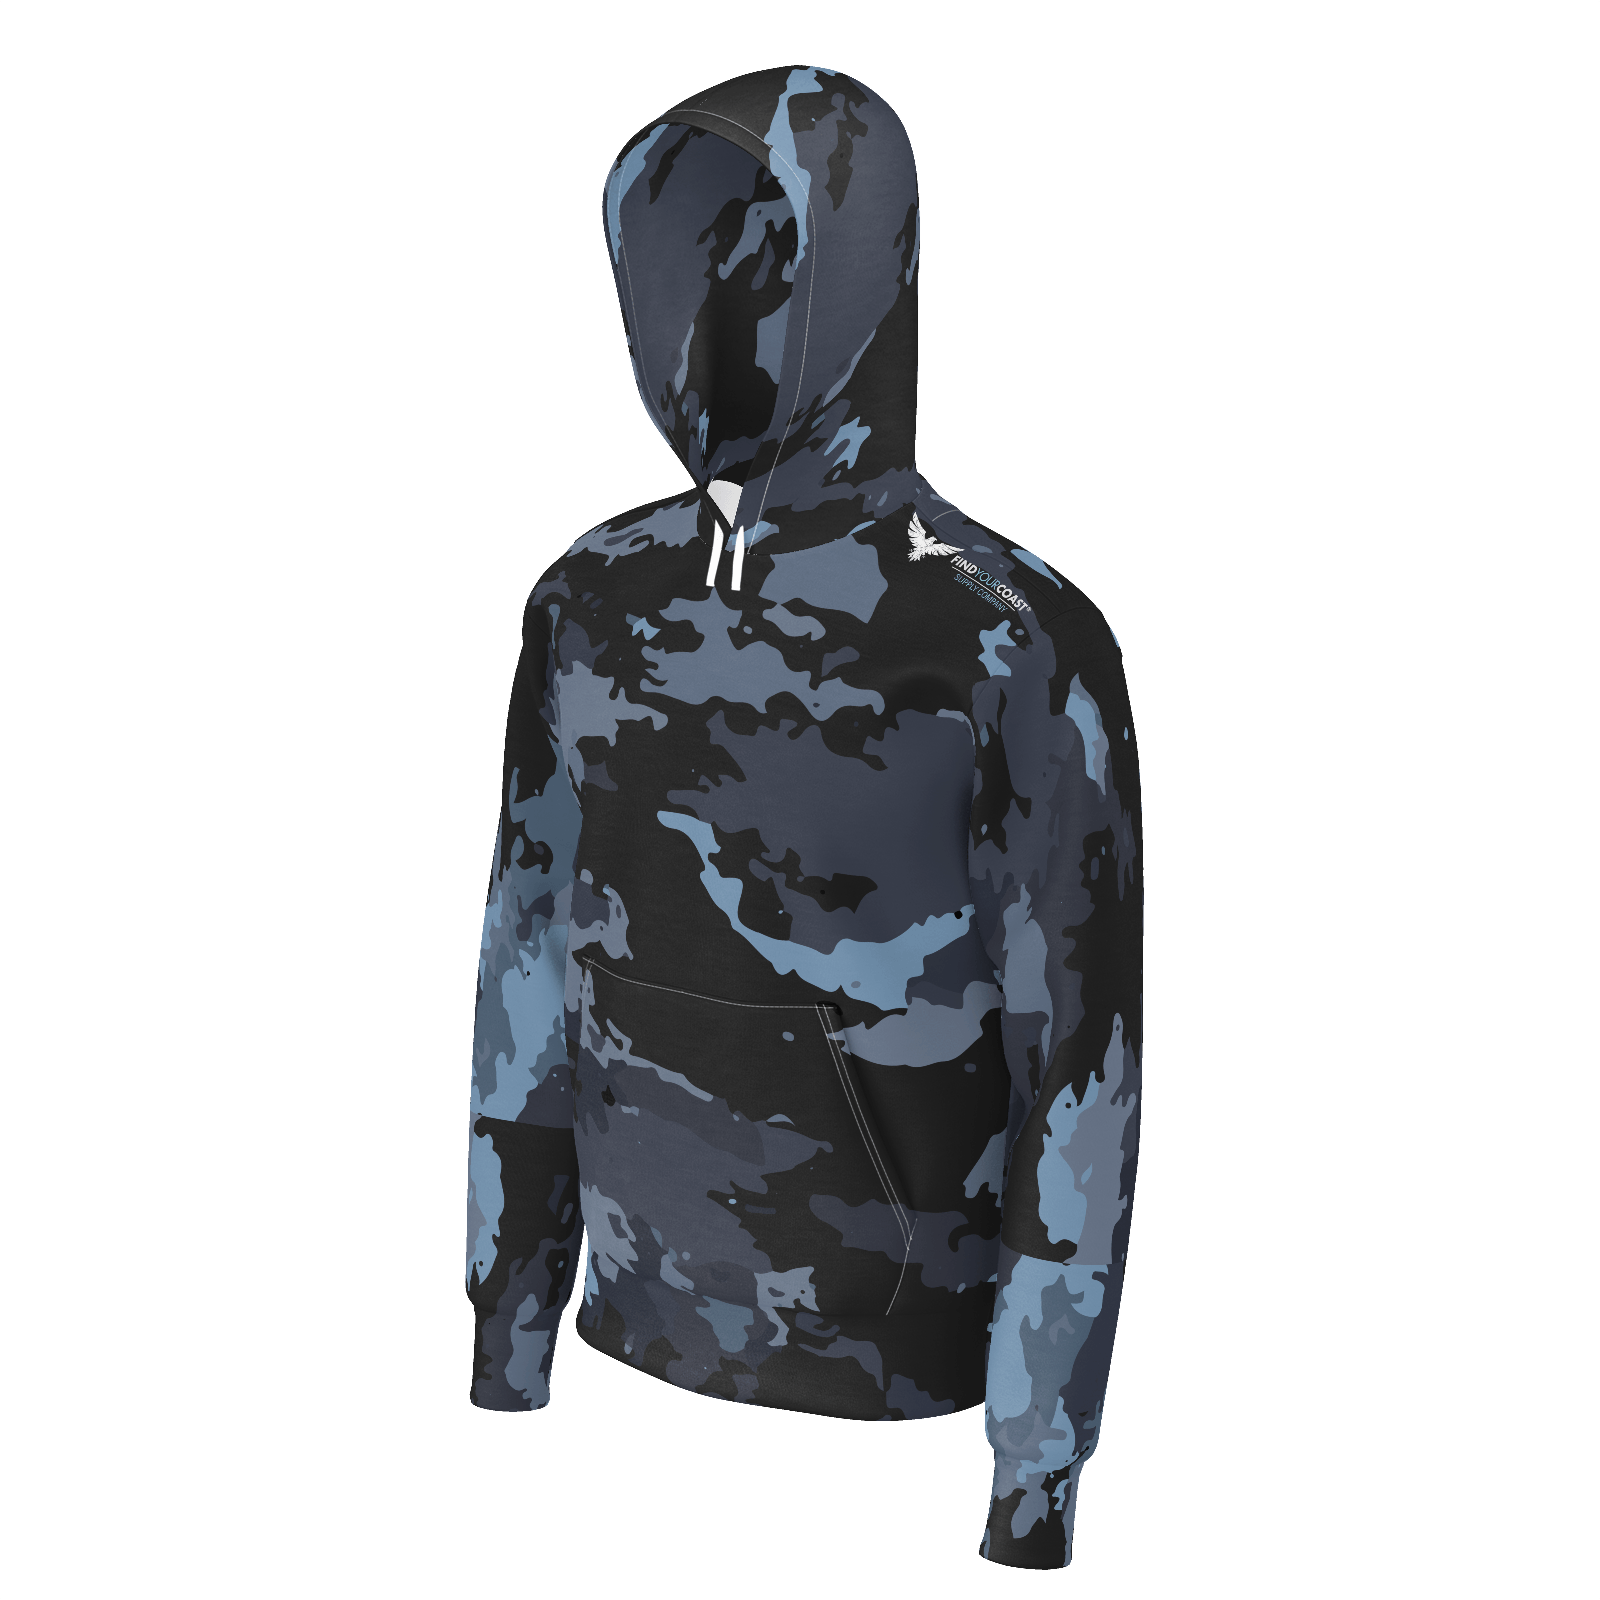 Men's Find Your Coast Supply Co. Tahoe Camo Sustainable Pullover Sweatshirt Hoodie - Find Your Coast Supply Co.